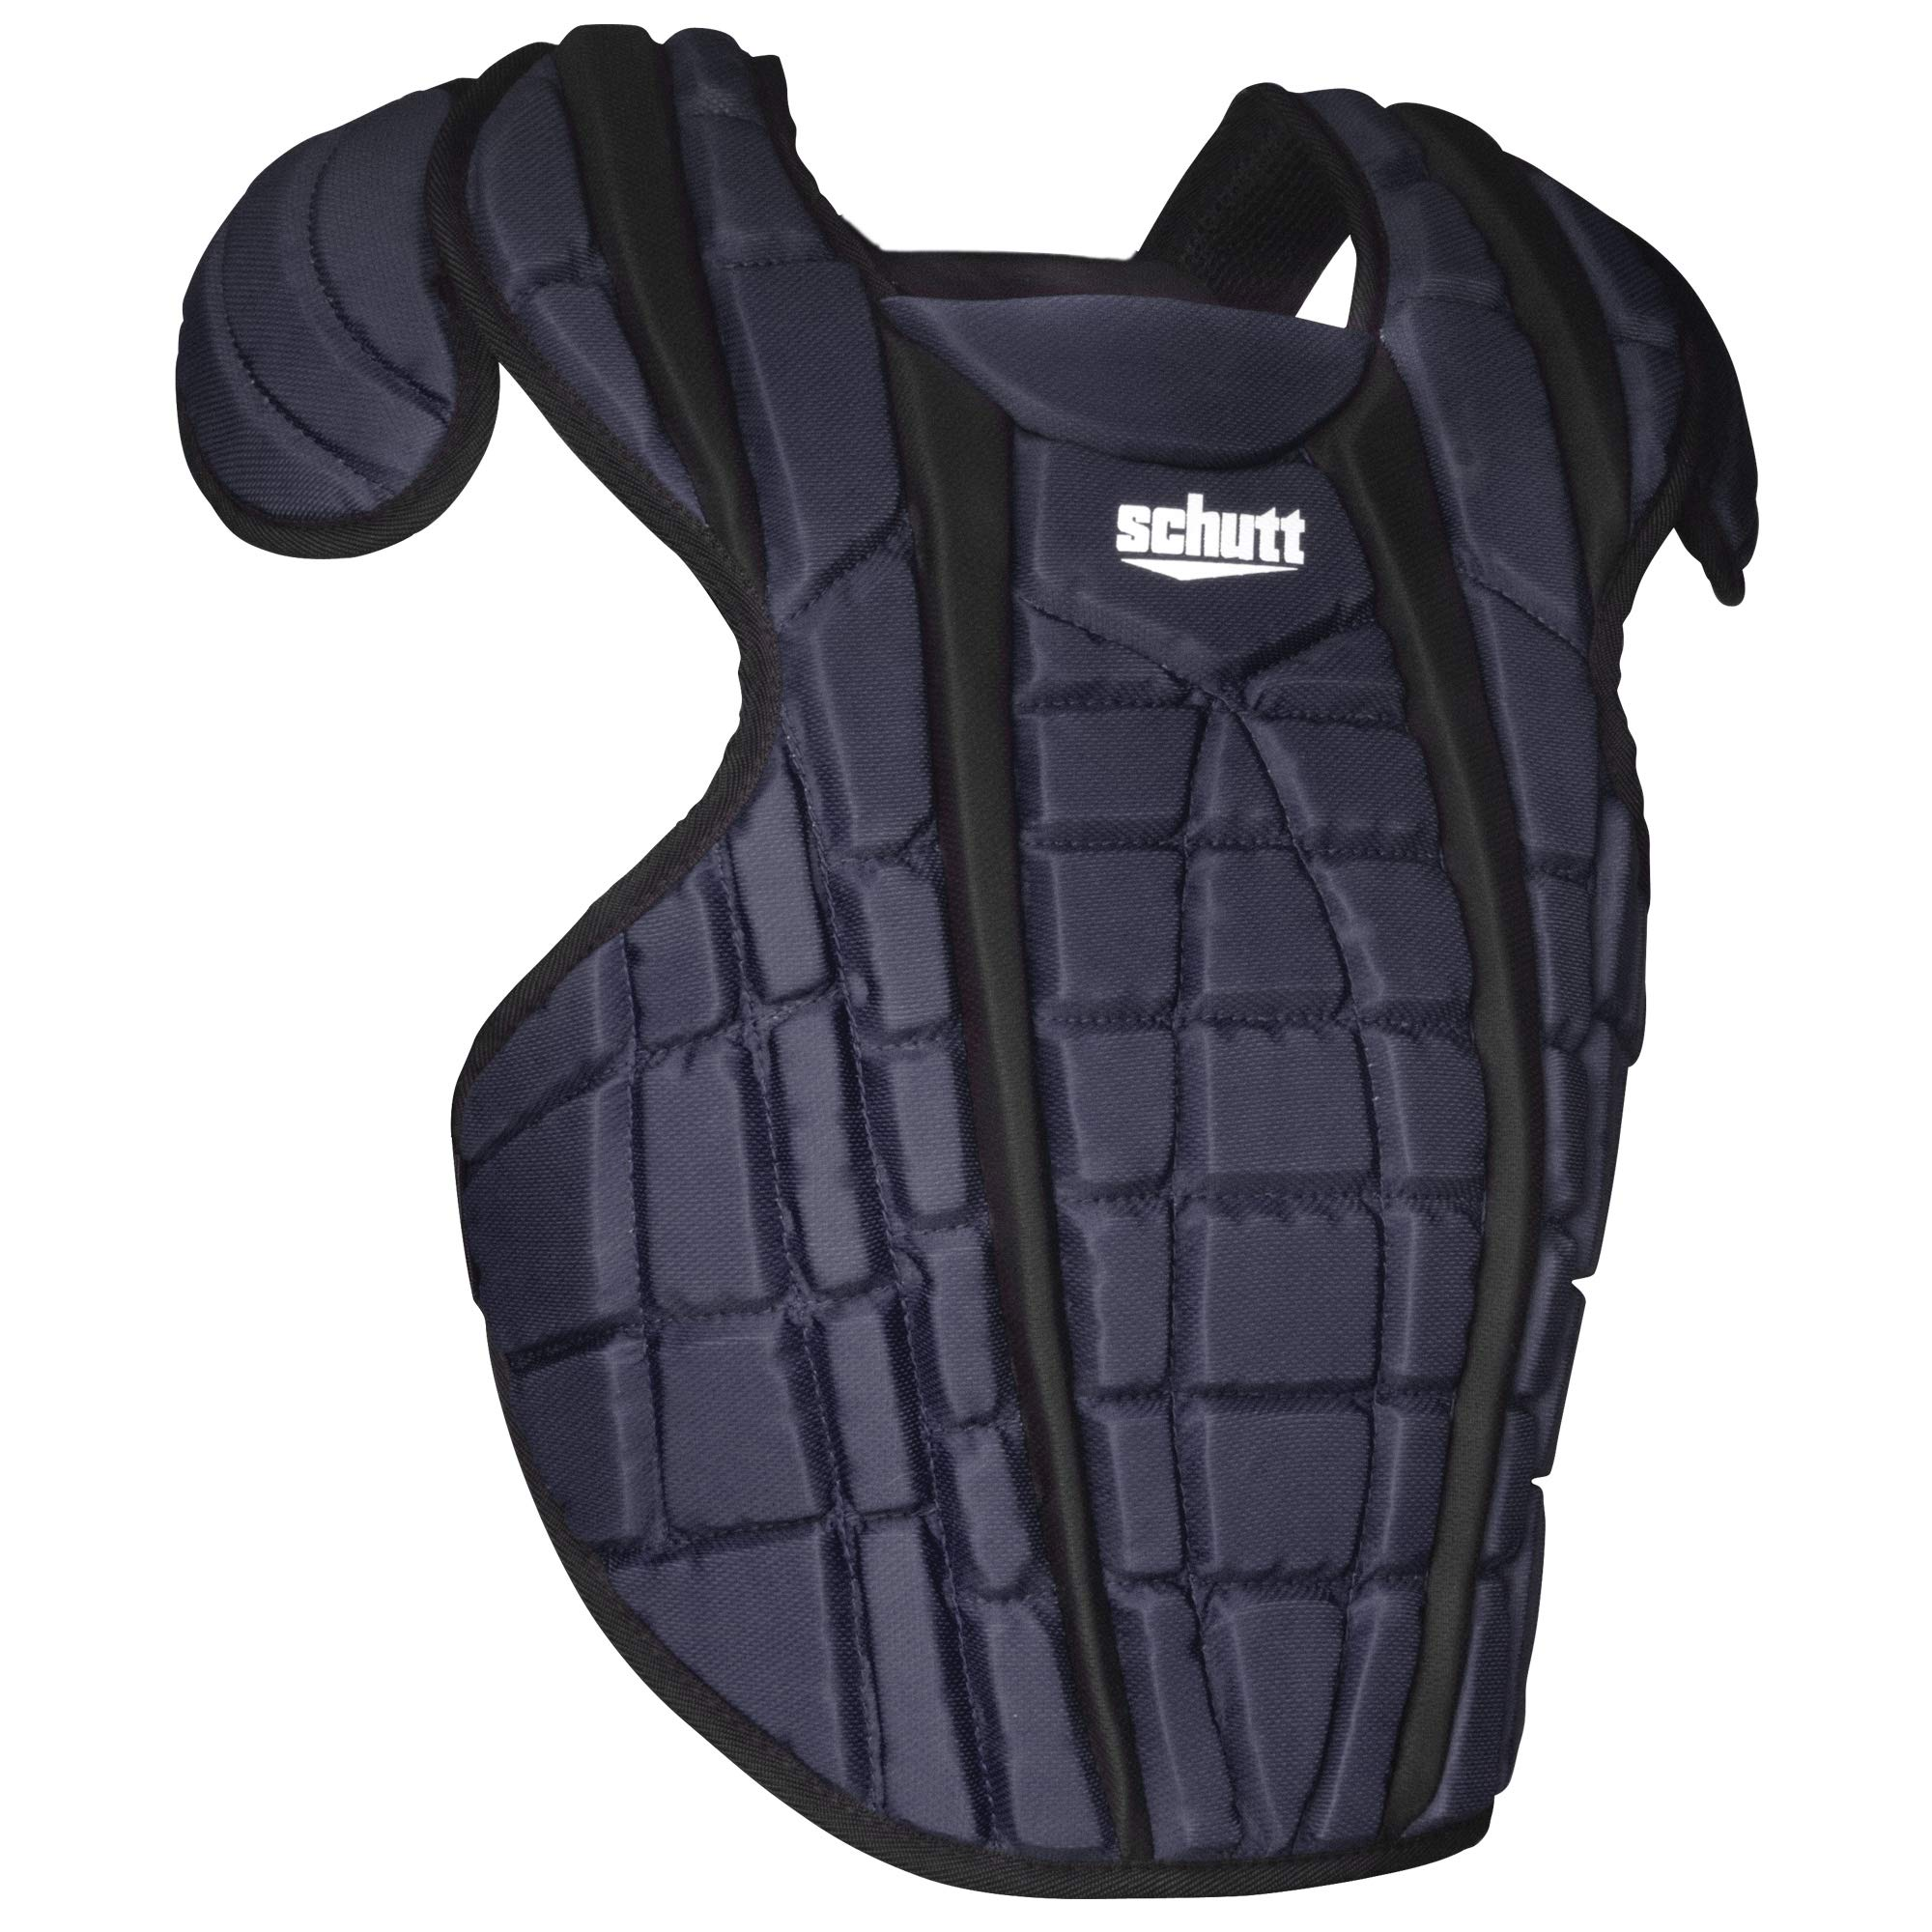 Schutt S3 Chest Protector - 15'' (EA) by Schutt